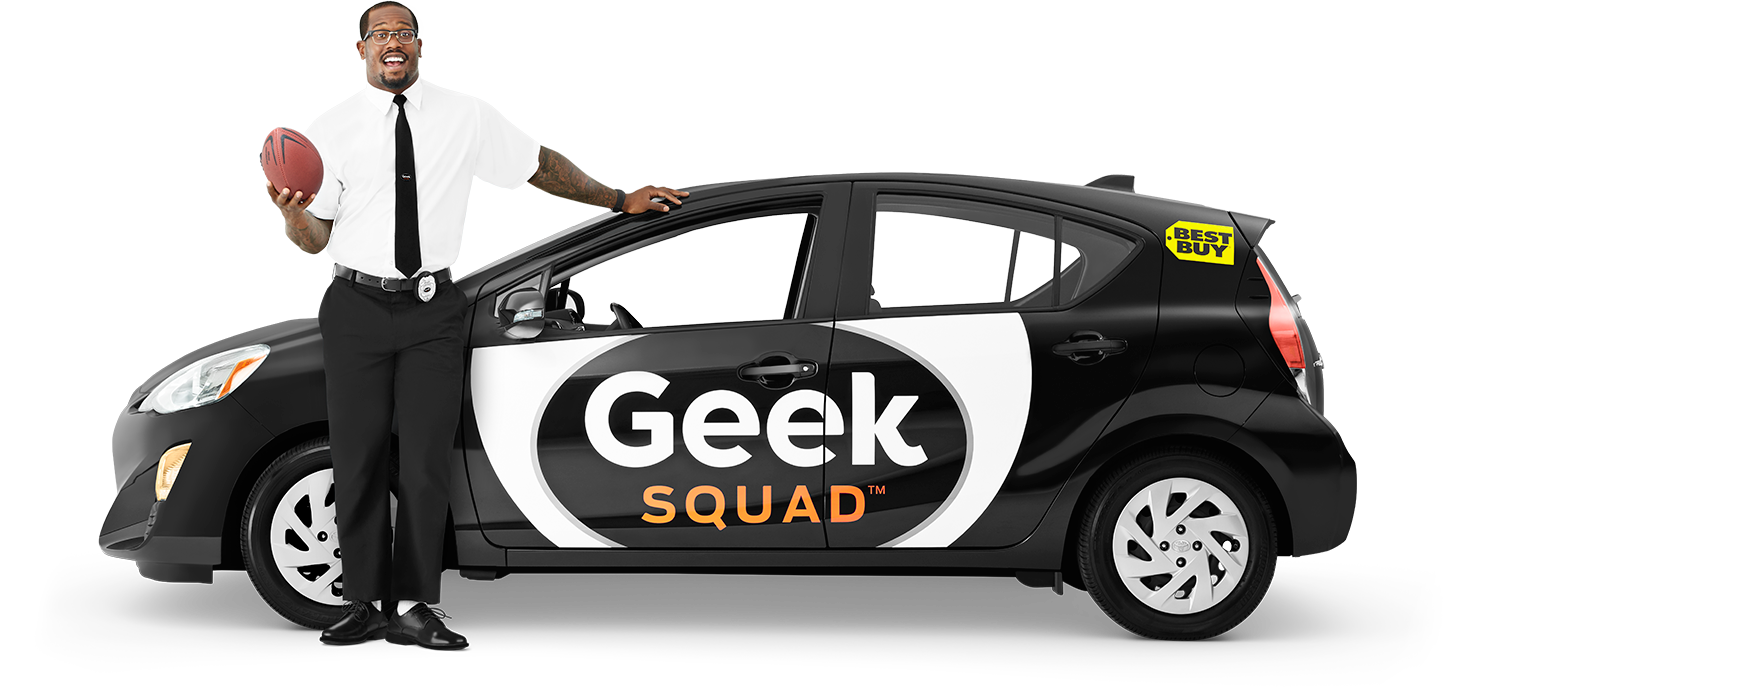 Geek Squad Agent in car